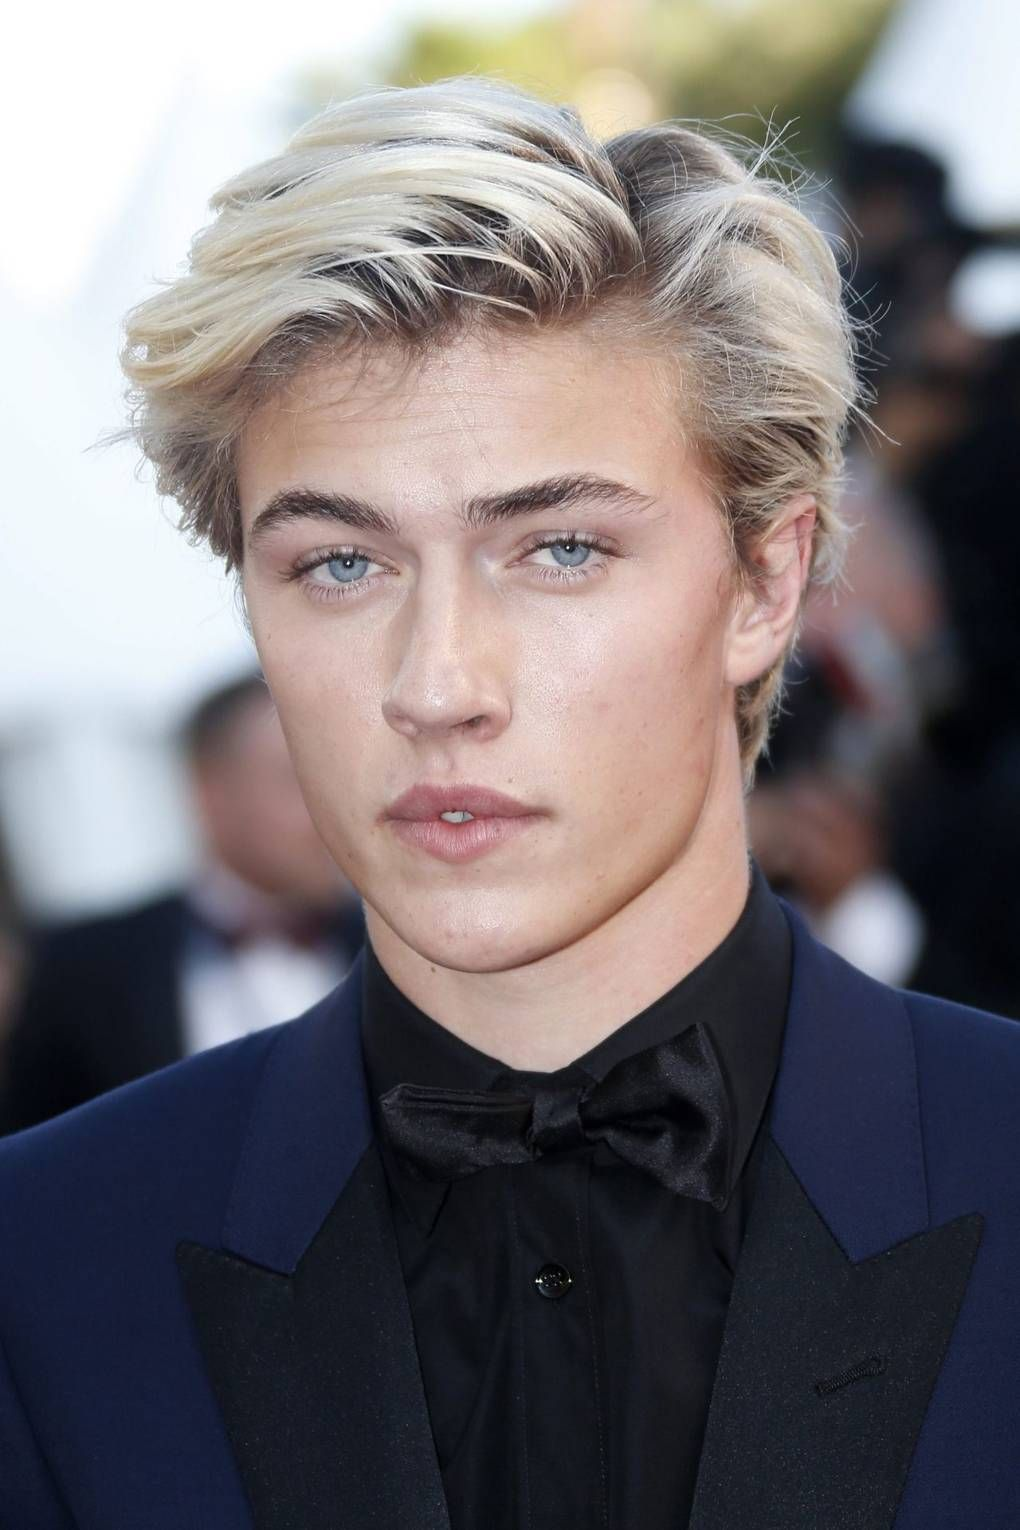 Going Blond Here Are 13 Men Who Got It Right Lucky Blue Lucky Blue Smith Blonde Guys